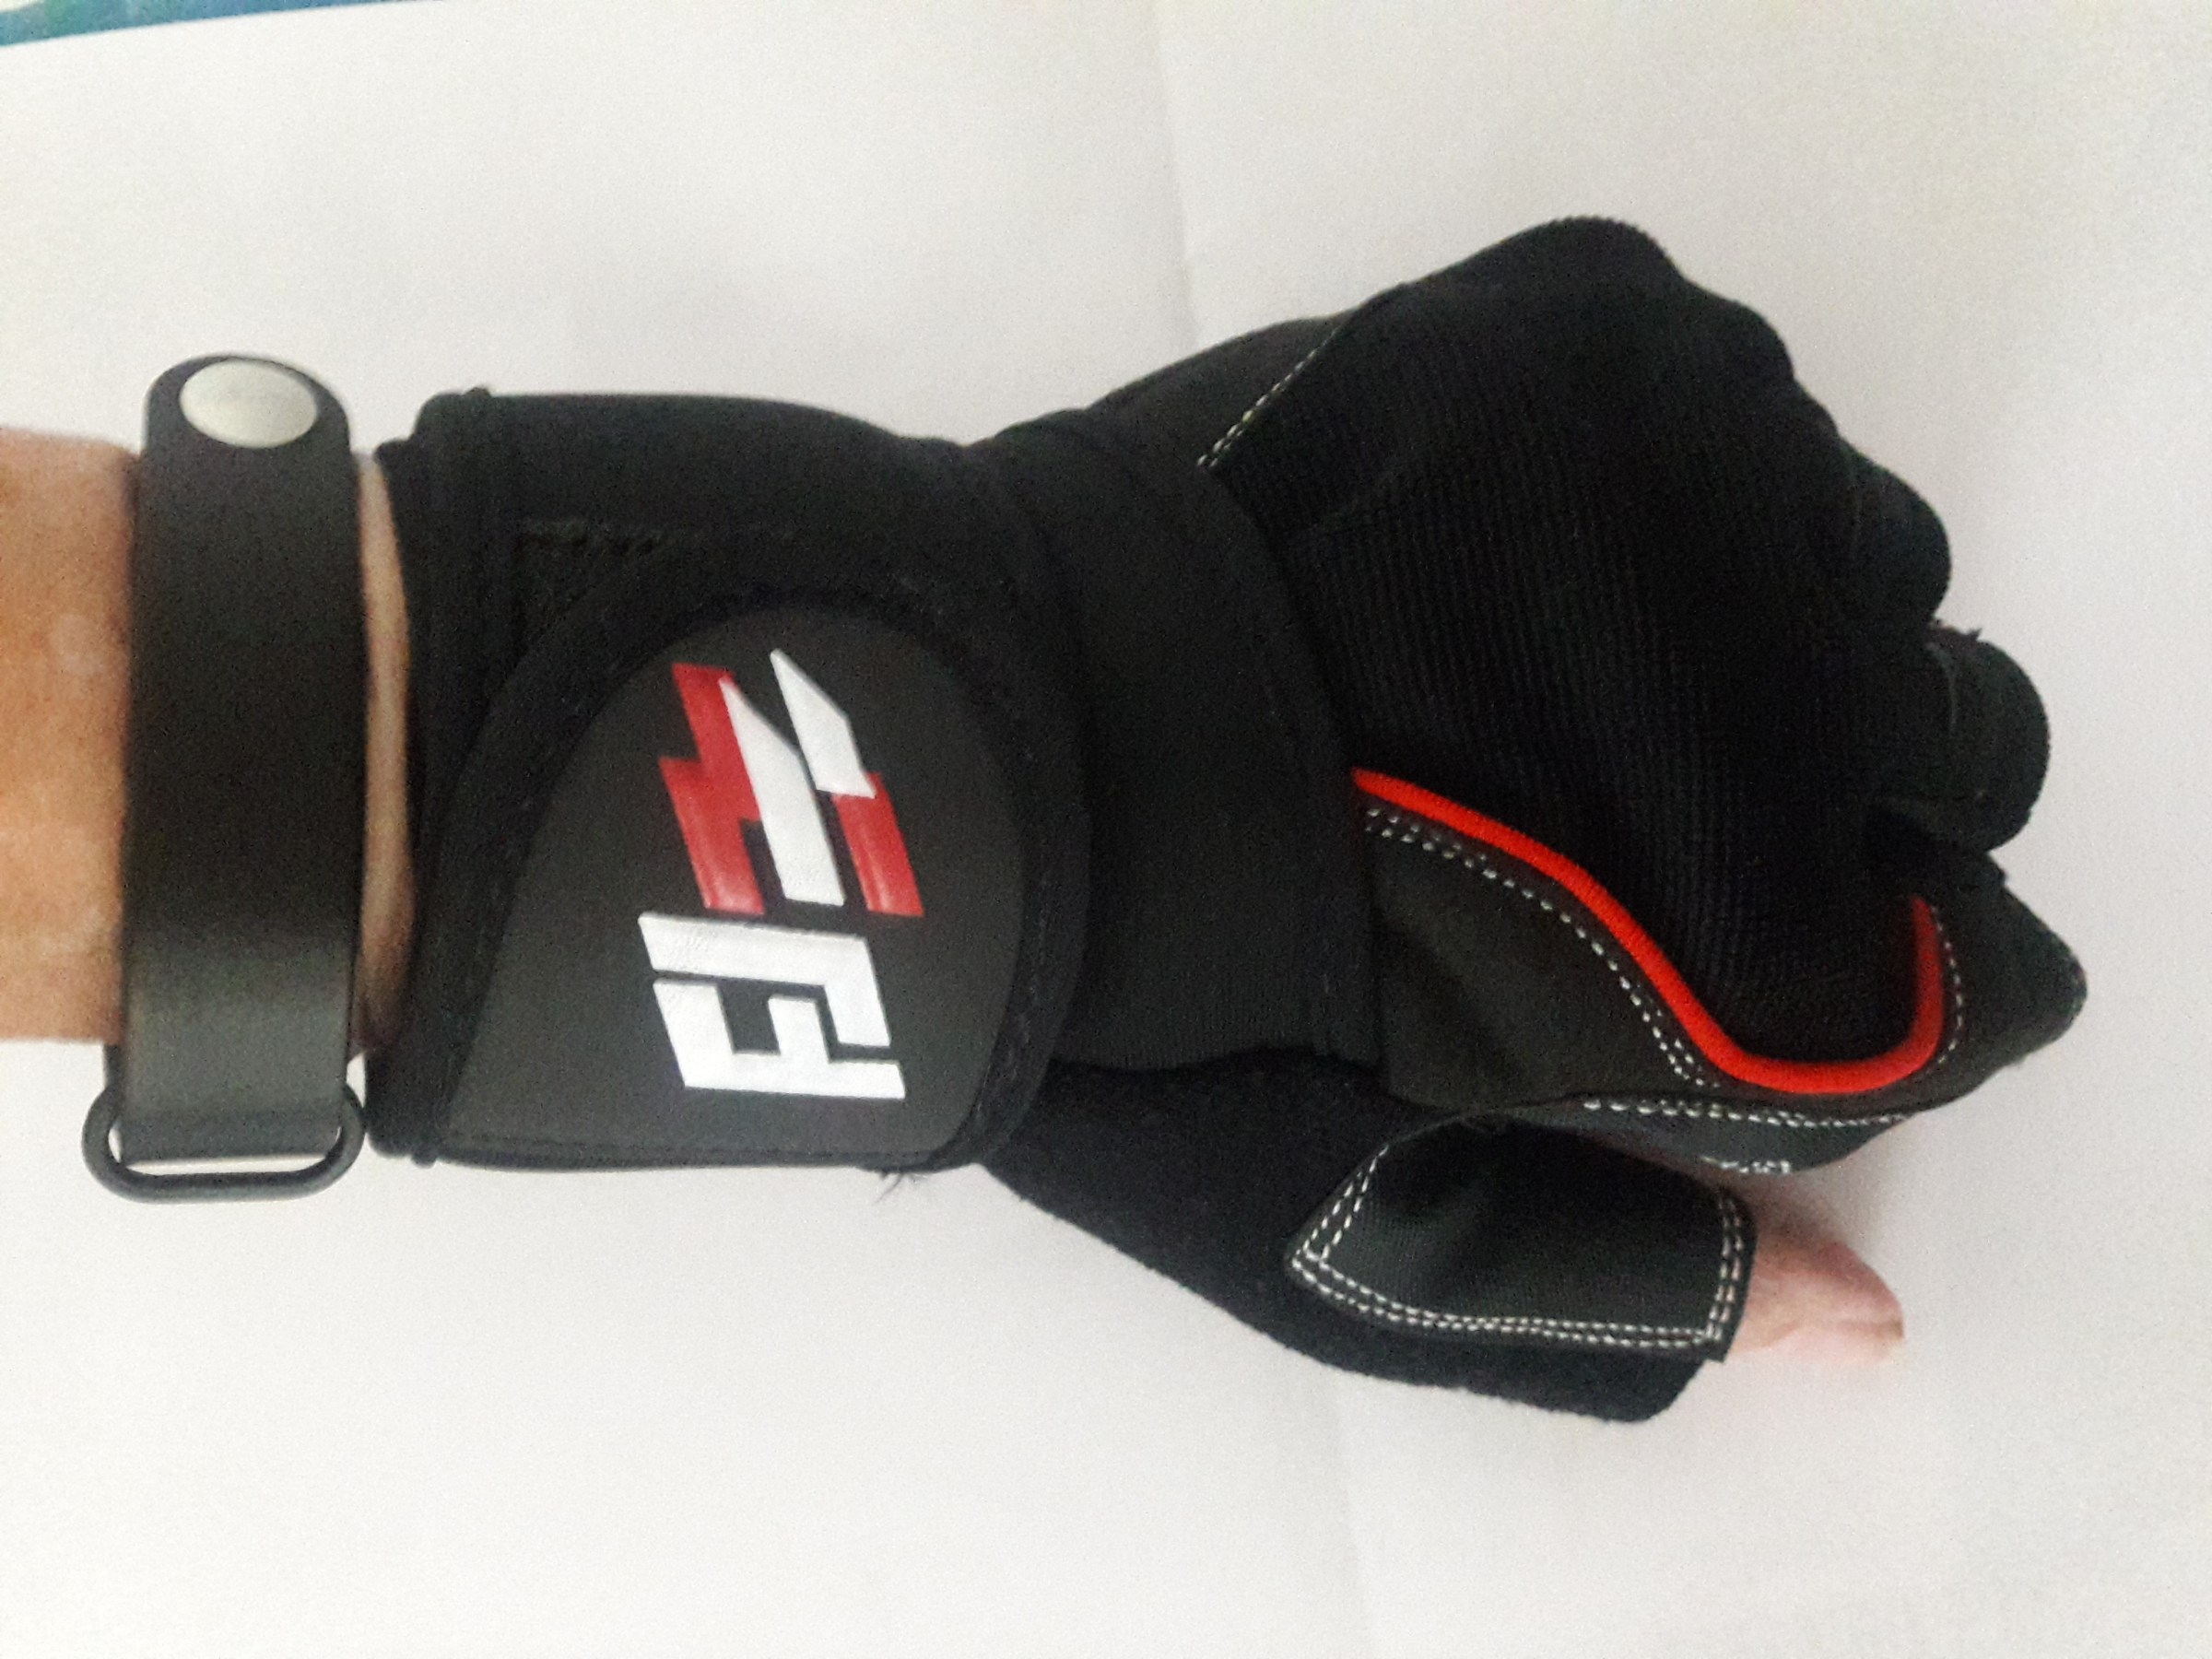 The best weight lifting gloves I own.